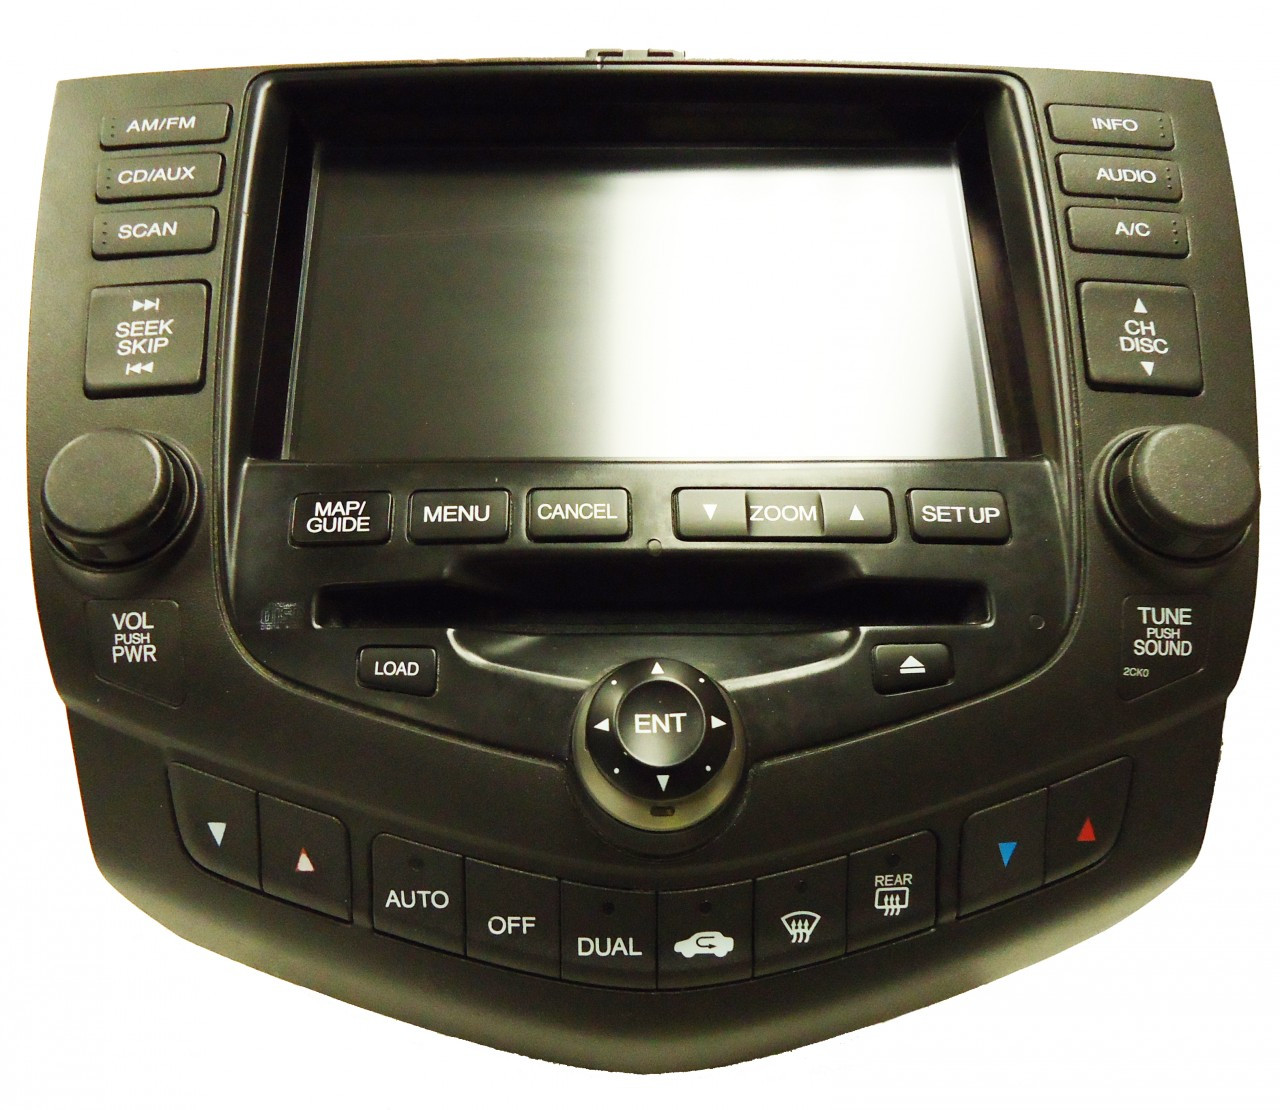 2003 honda accord navigation gps radio 6 cd changer player. Black Bedroom Furniture Sets. Home Design Ideas